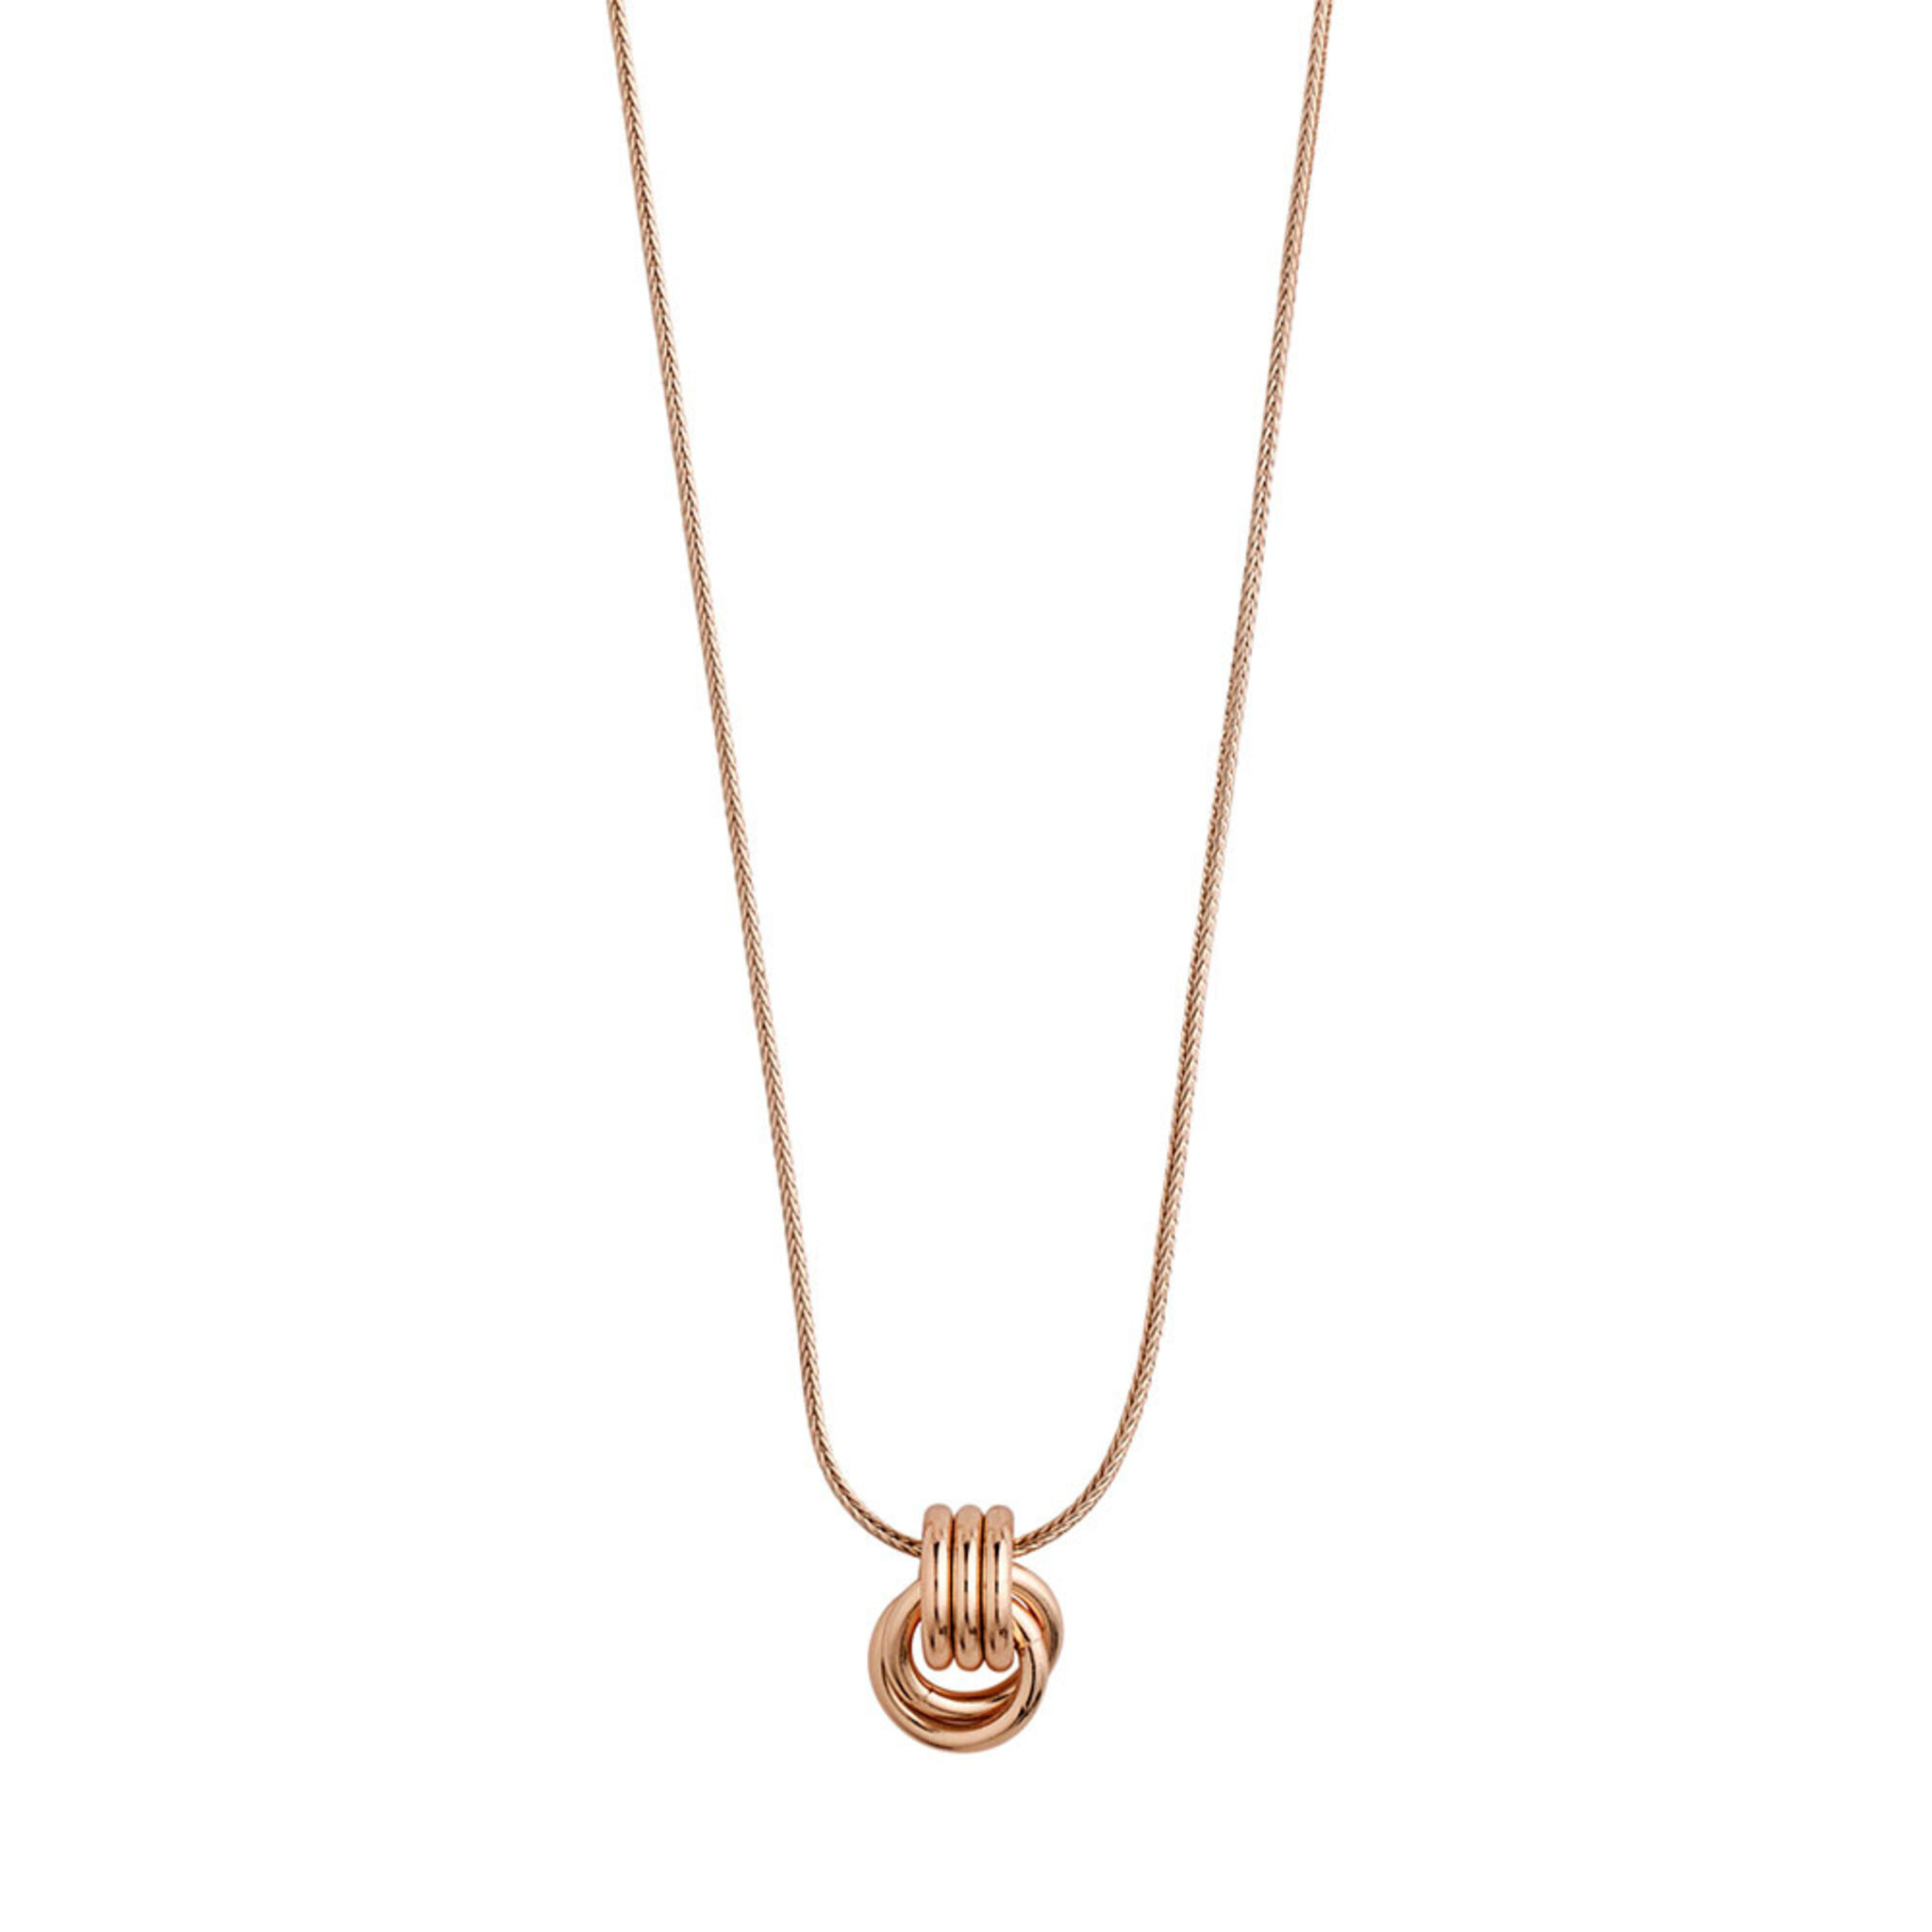 Necklace : Doris : Rose Gold Plated, ONE SIZE